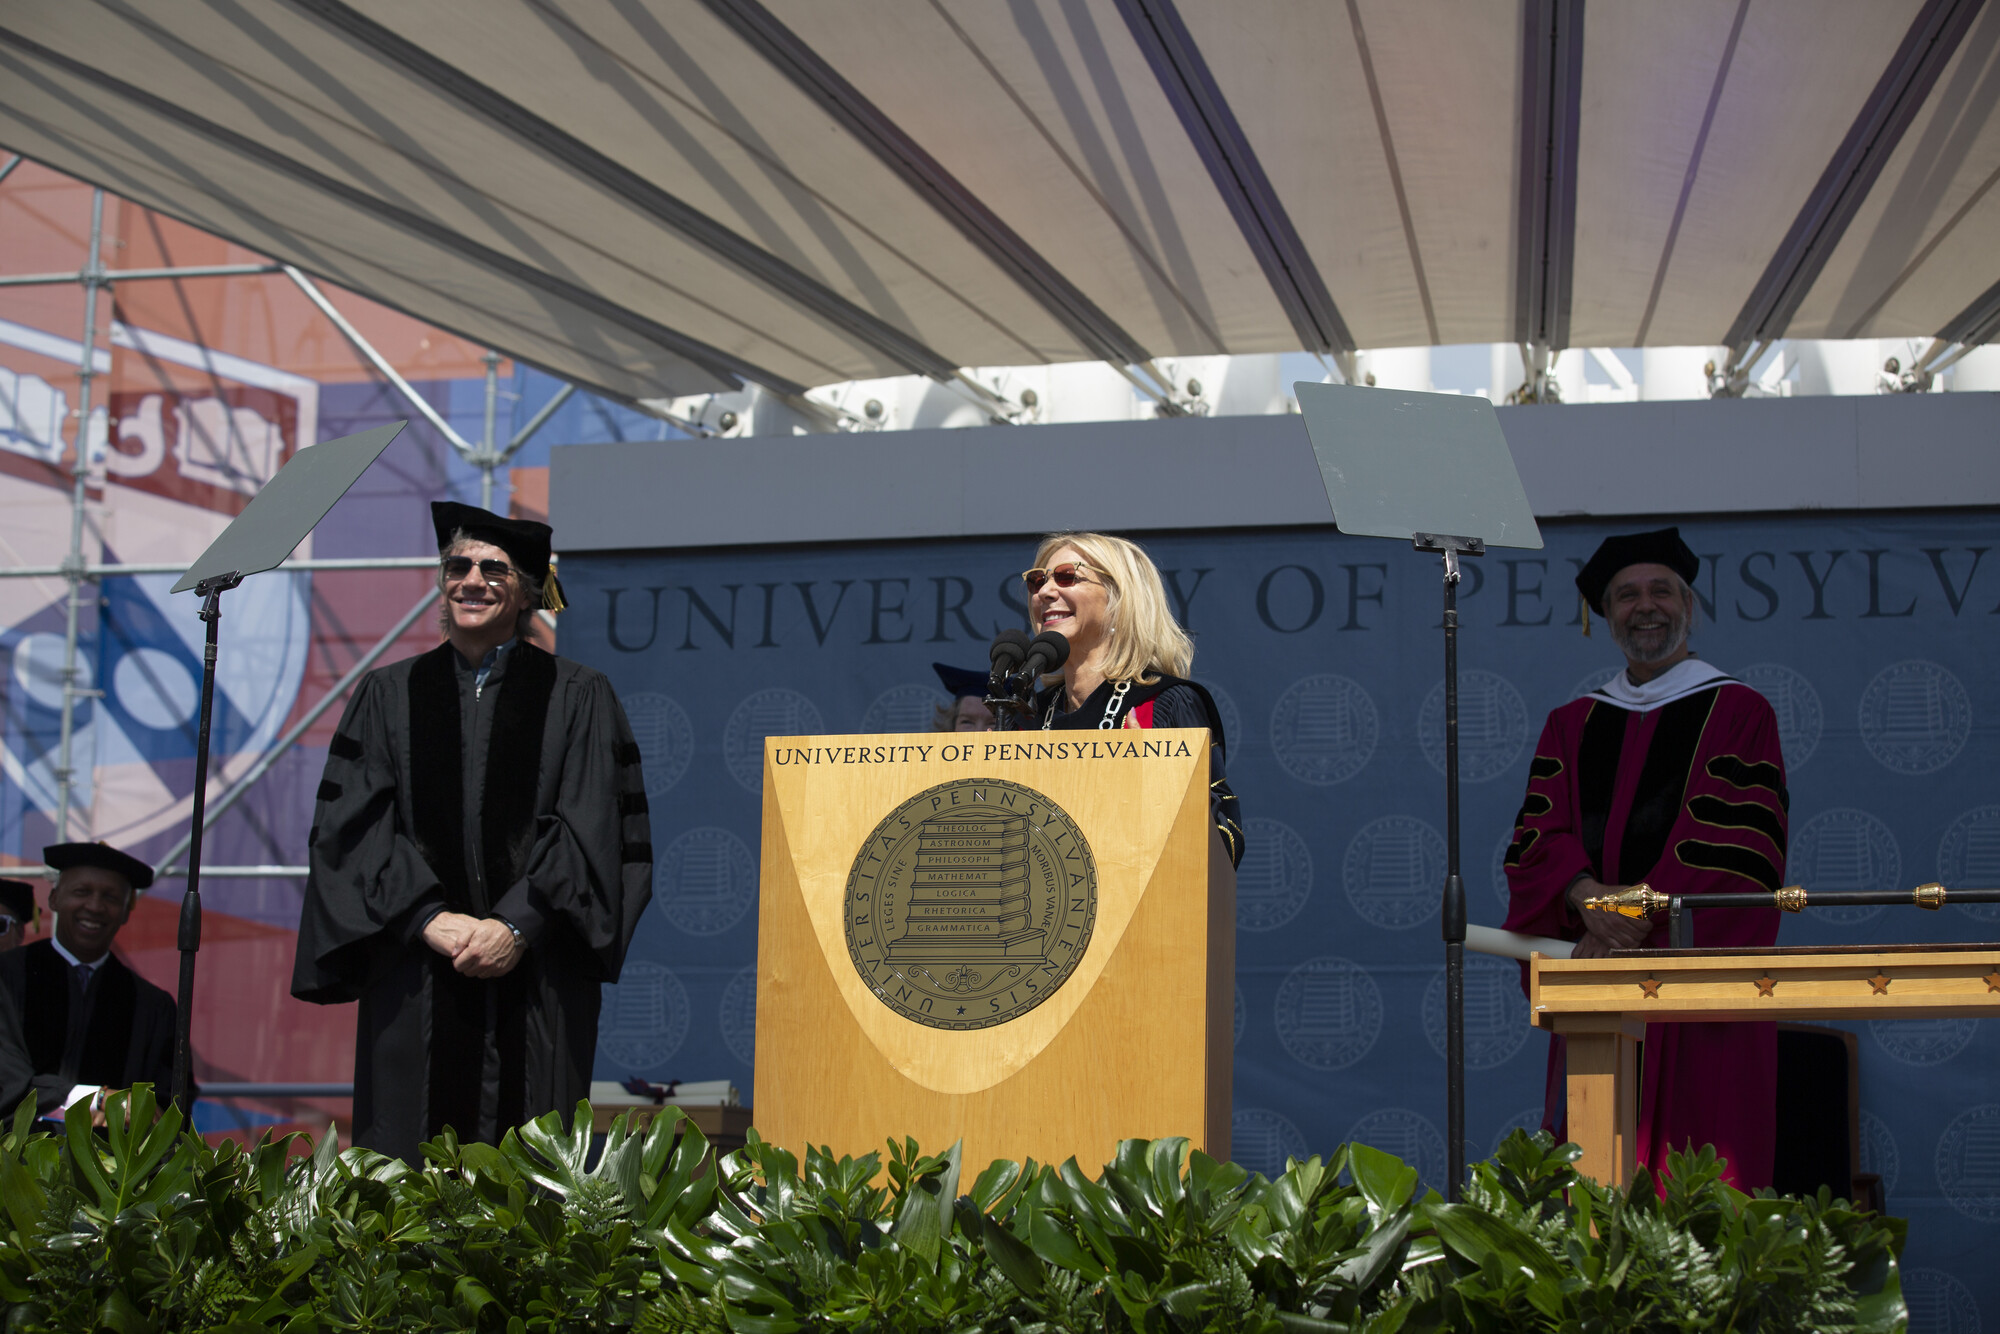 Jon Bon Jovi, Amy Gutmann and Michael Delli Carpini on stage during commencement, Gutmann is at a podium.